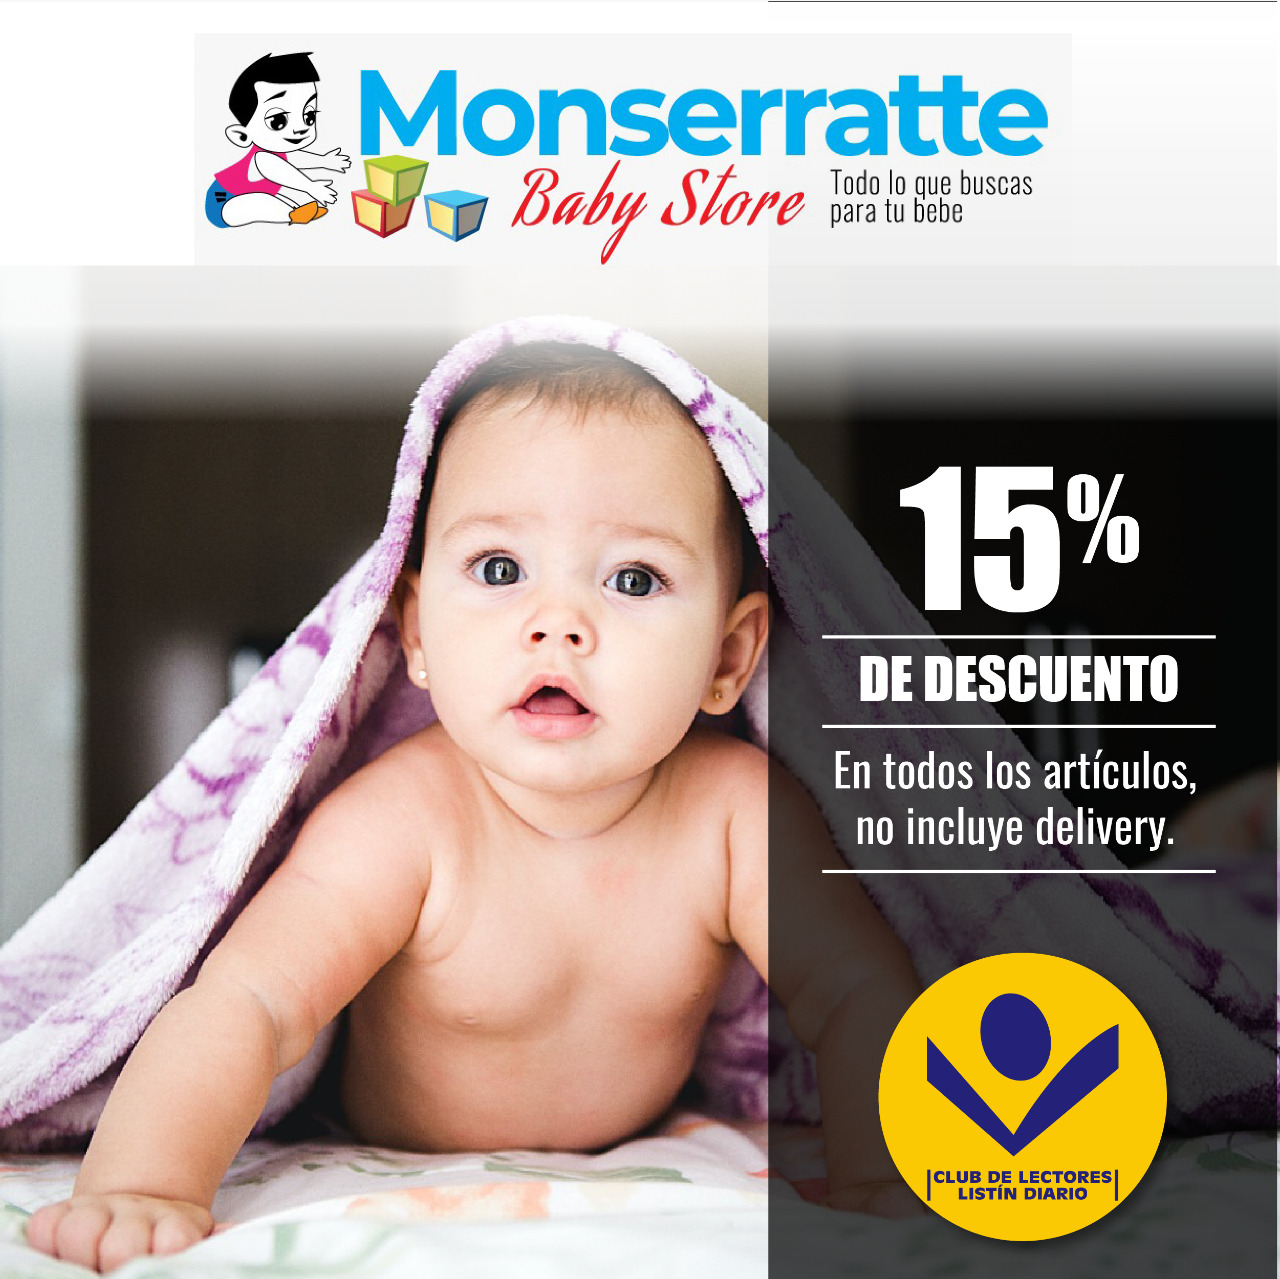 Monserratte Baby Store